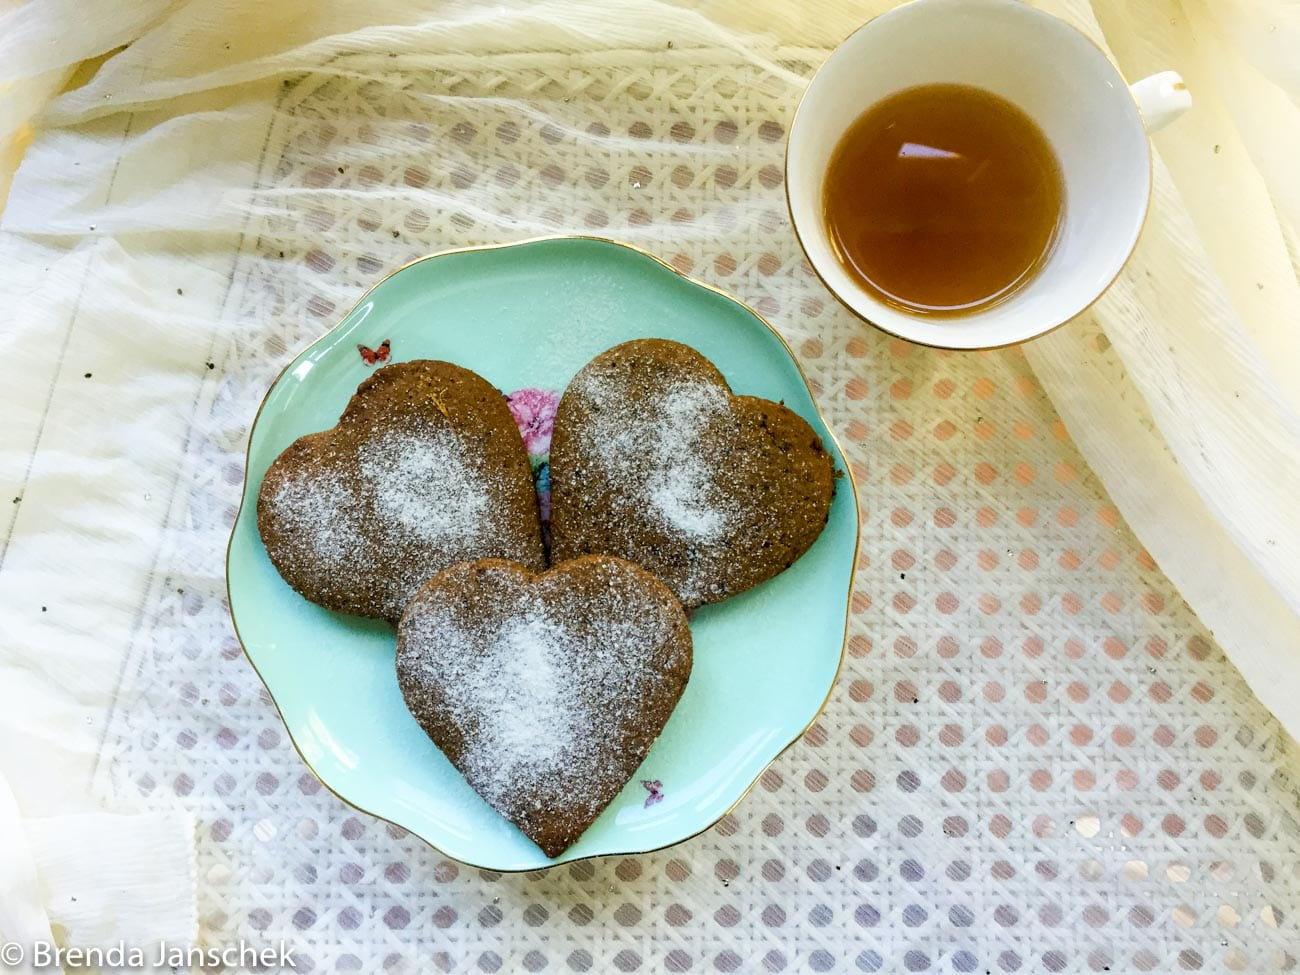 Brenda-Janschek-Recipe-Ginger-Hearts-Cuppa-Feature.jpg